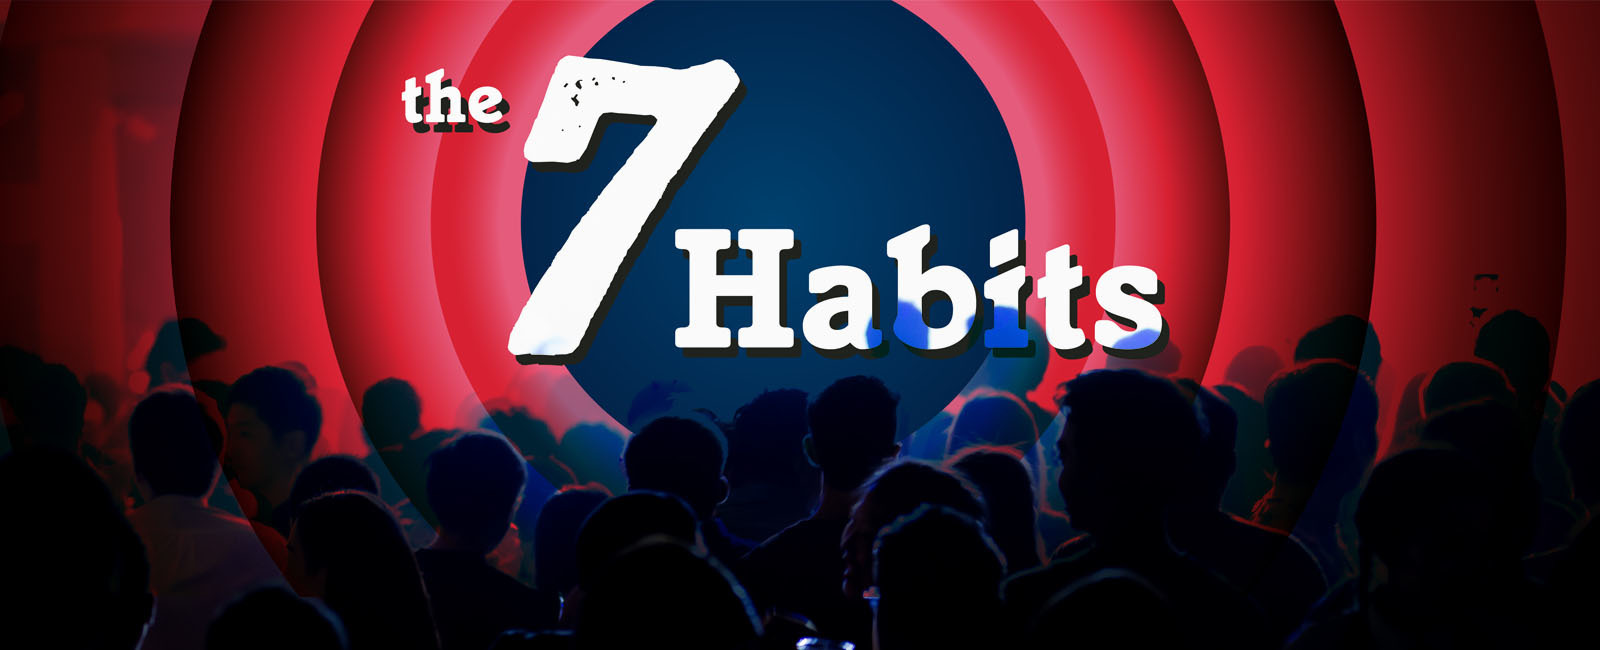 The 7 Habits Skiers: Be Pro-Active